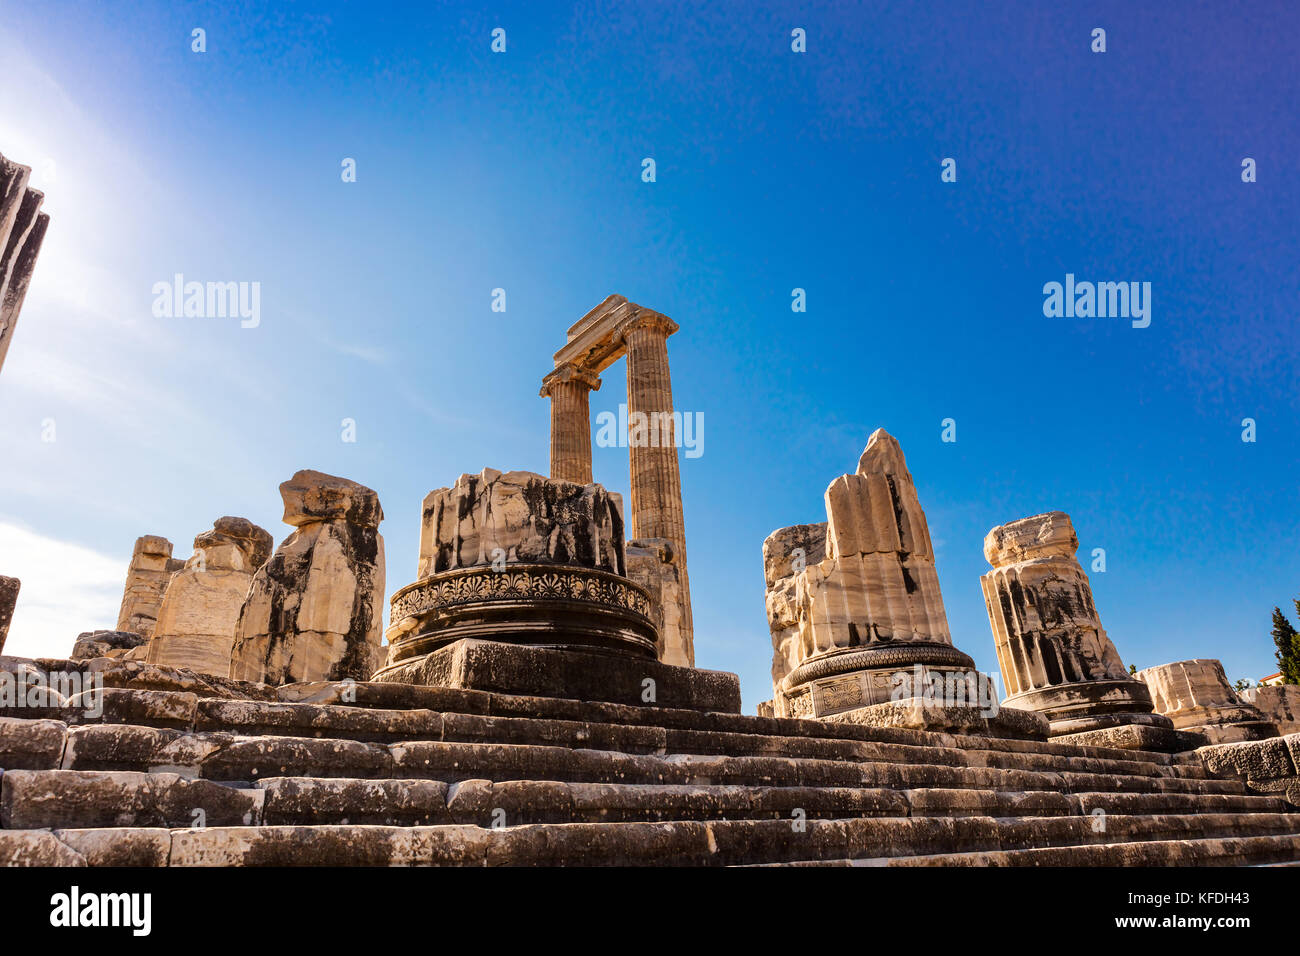 Historic site of the Temple of Apollo in Didym, Turkey - Stock Image